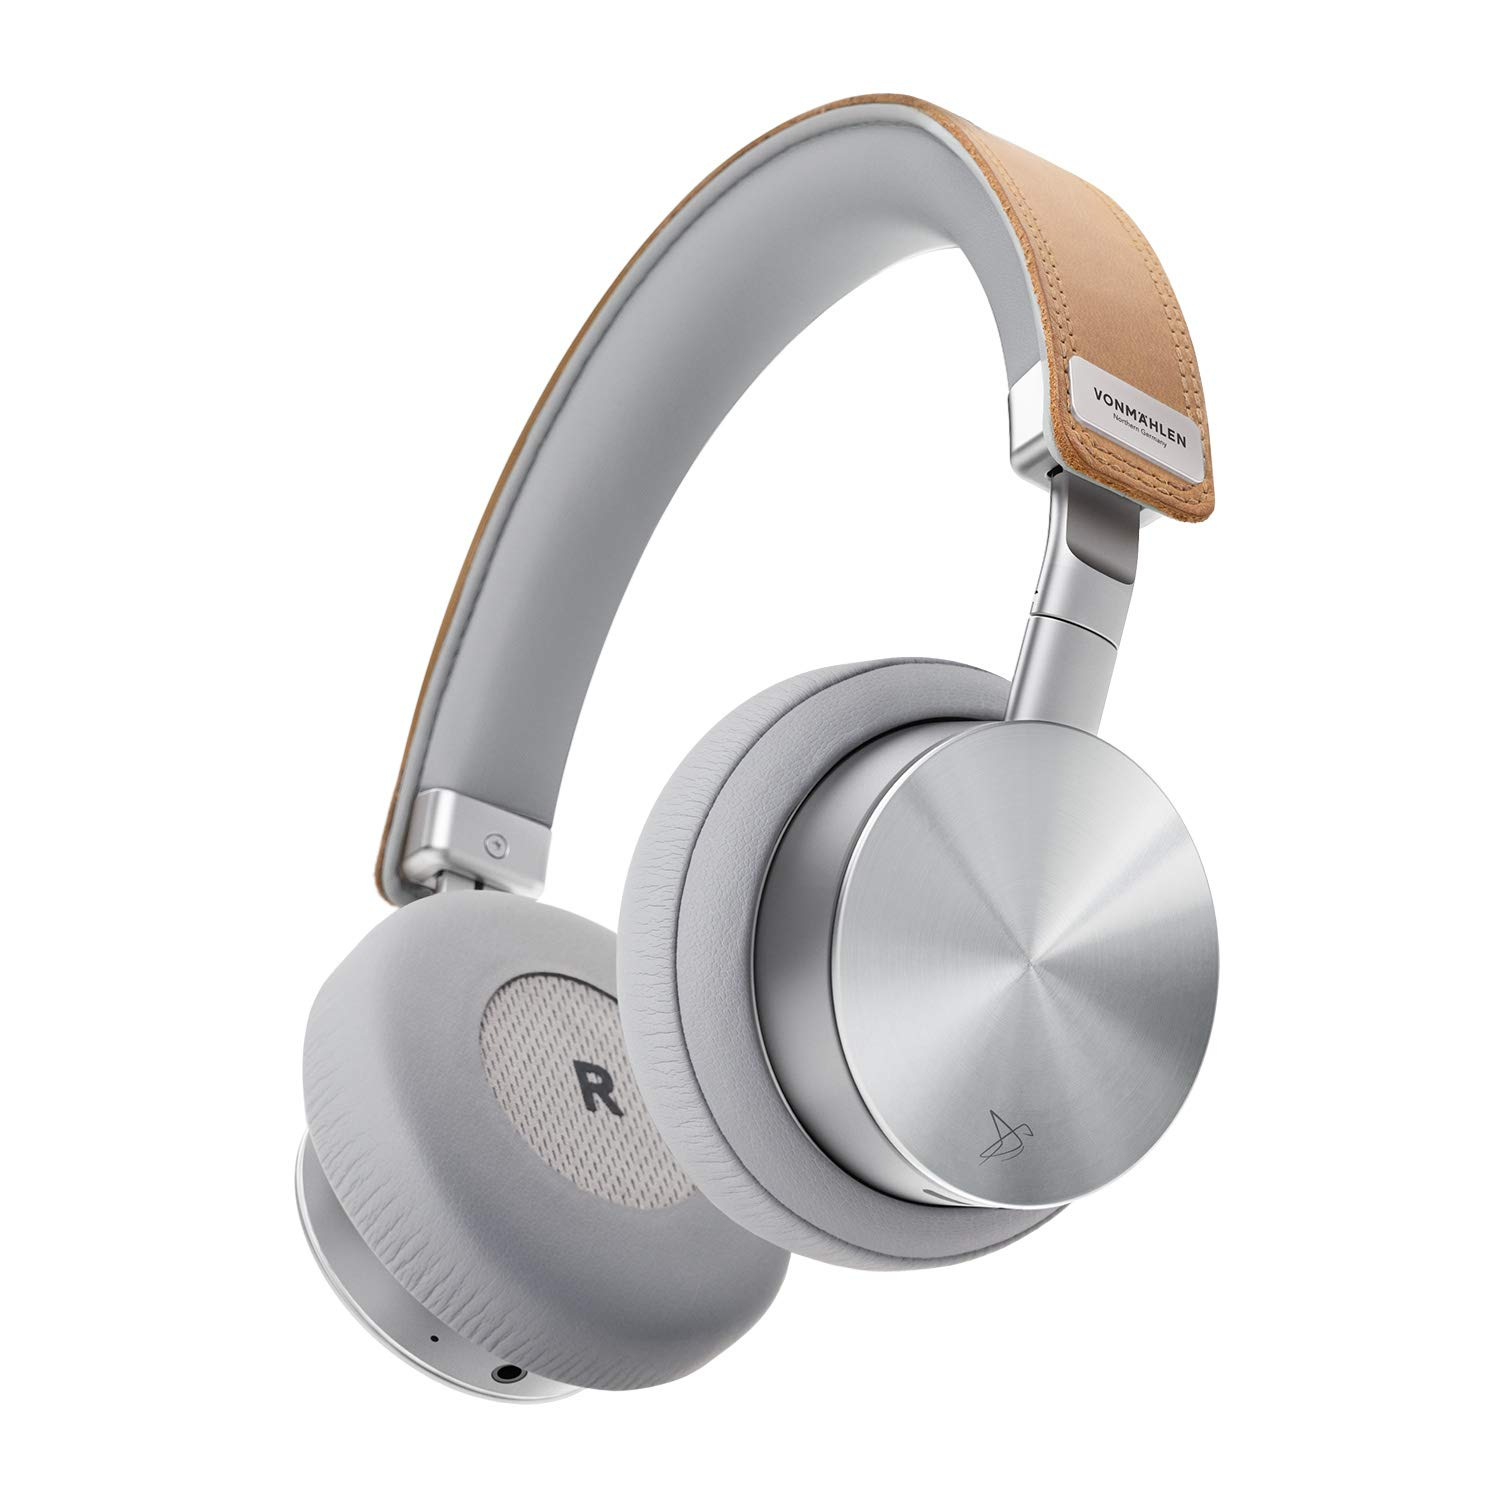 VONMÄHLEN Wireless Concert One – Wireless Bluetooth Headphones – Genuine Leather On-Ear Headphones w/ 21h Battery Life, Travel Case, and Mic - Silver